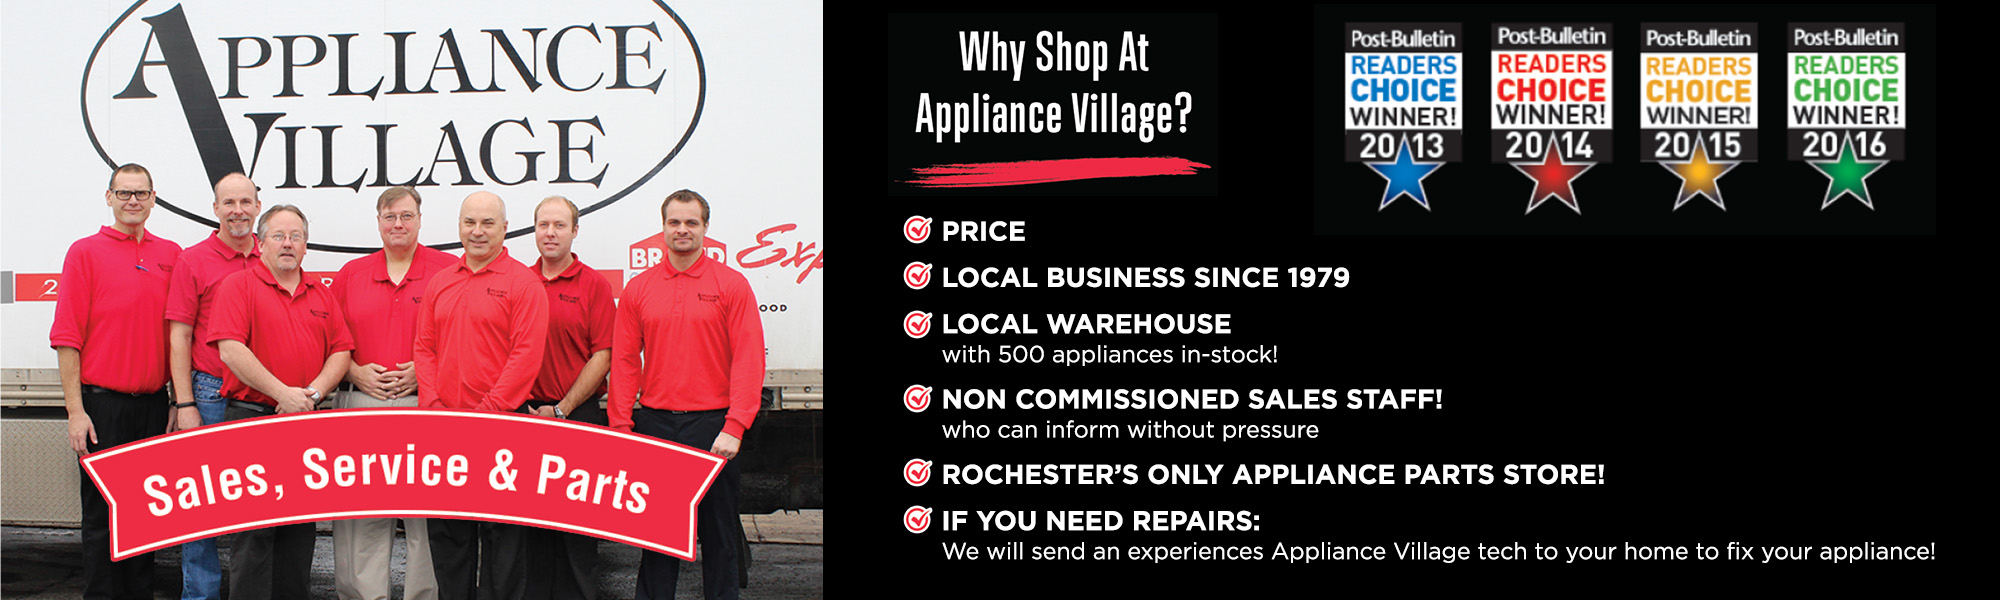 why shop at appliance village